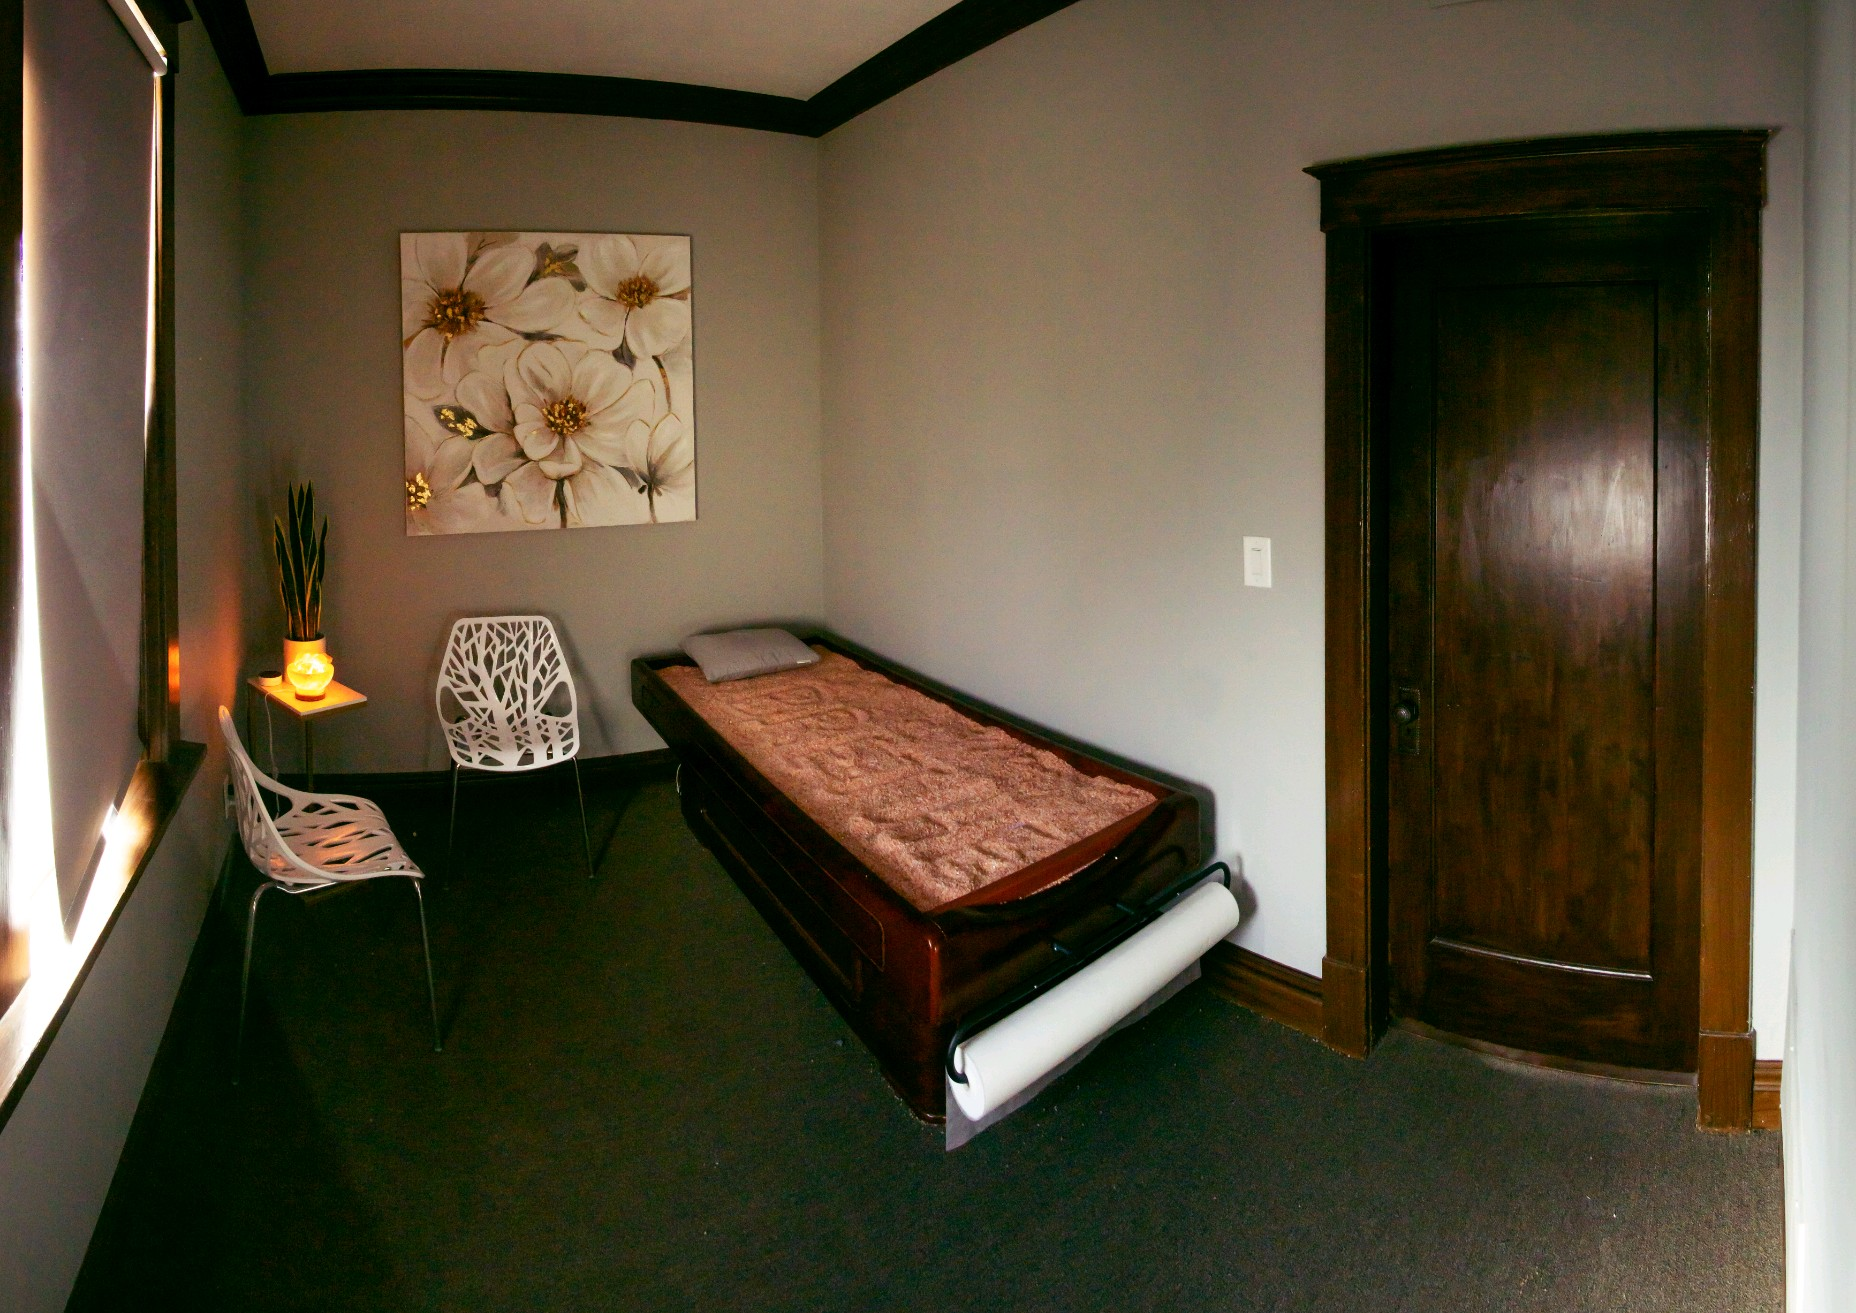 Enjoy the many health benefits of a heated Himalayan salt bed in the Solitude Room